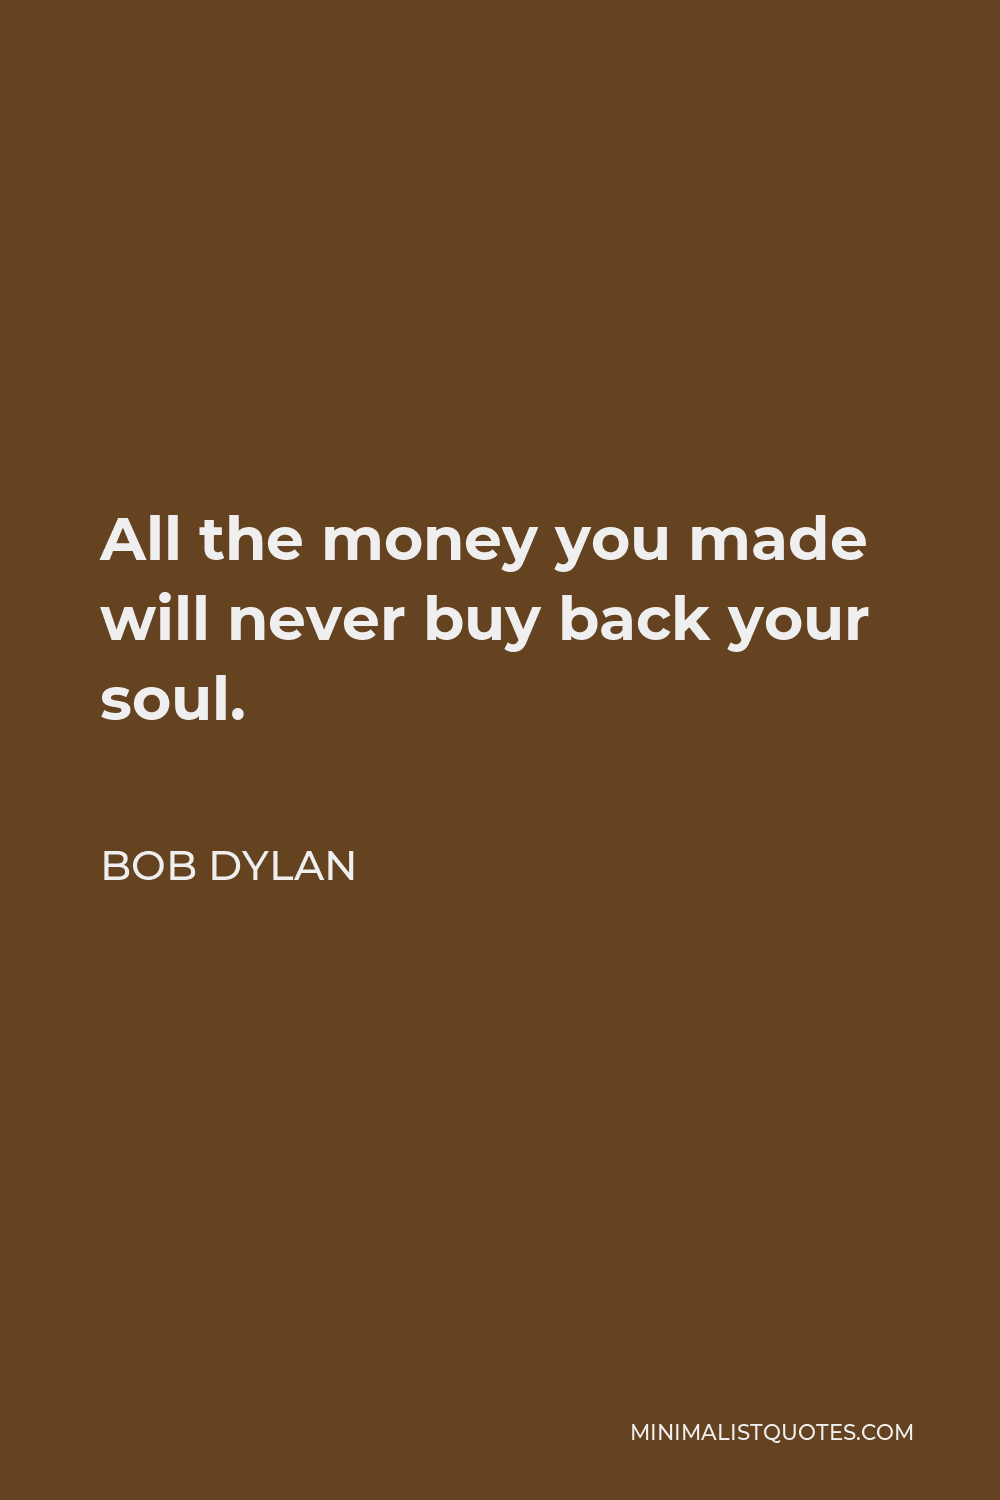 Bob Dylan Quote - All the money you made will never buy back your soul.